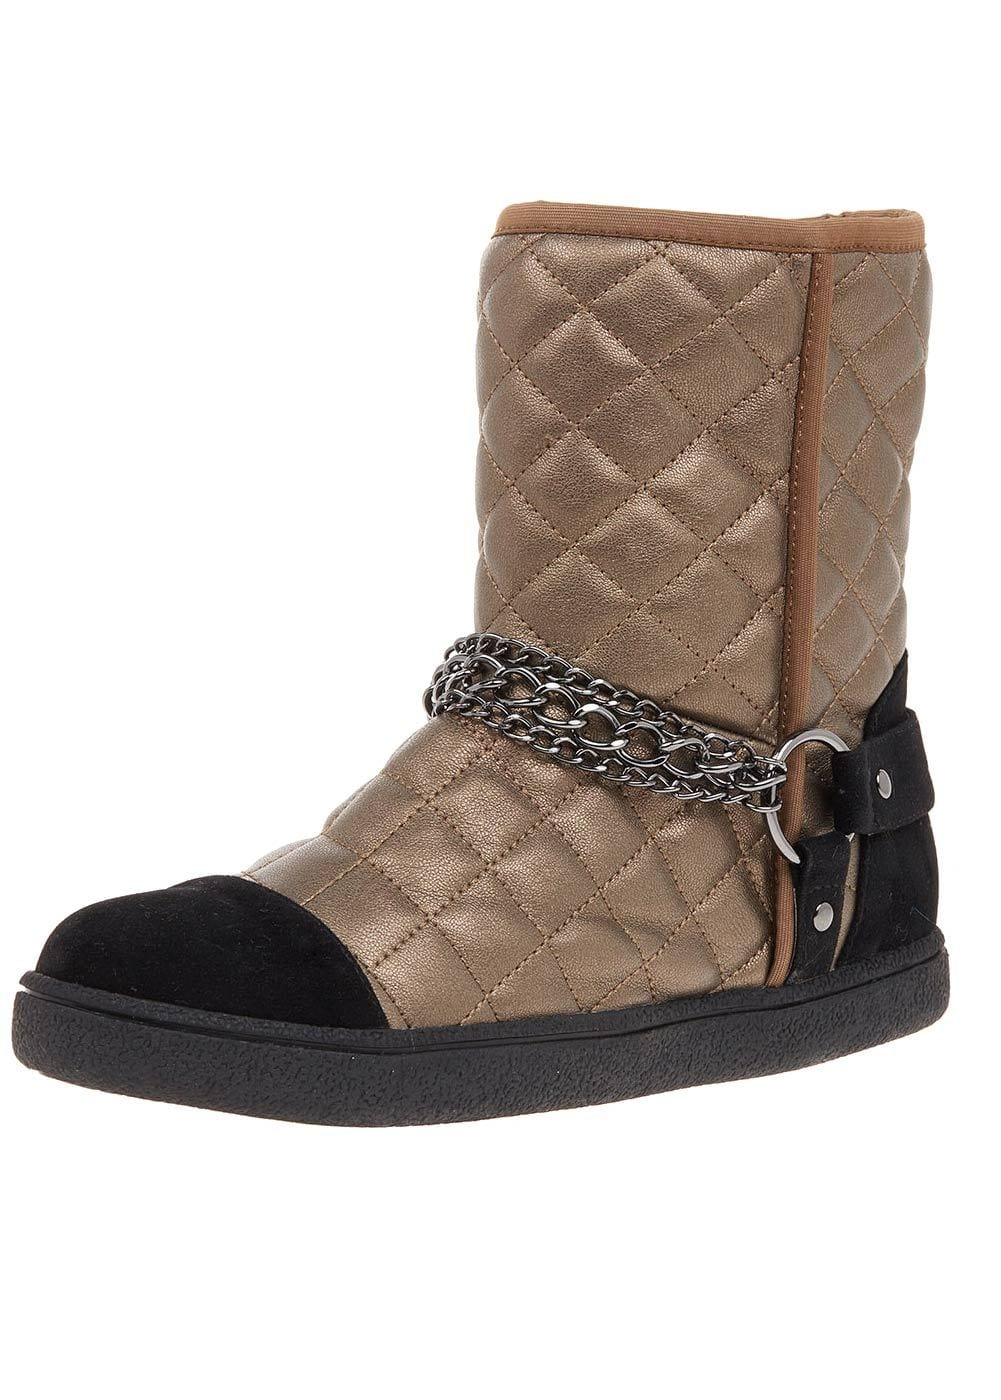 Girls Bronze Winter Biker Boots With Faux Fur Lining-TeenzShop